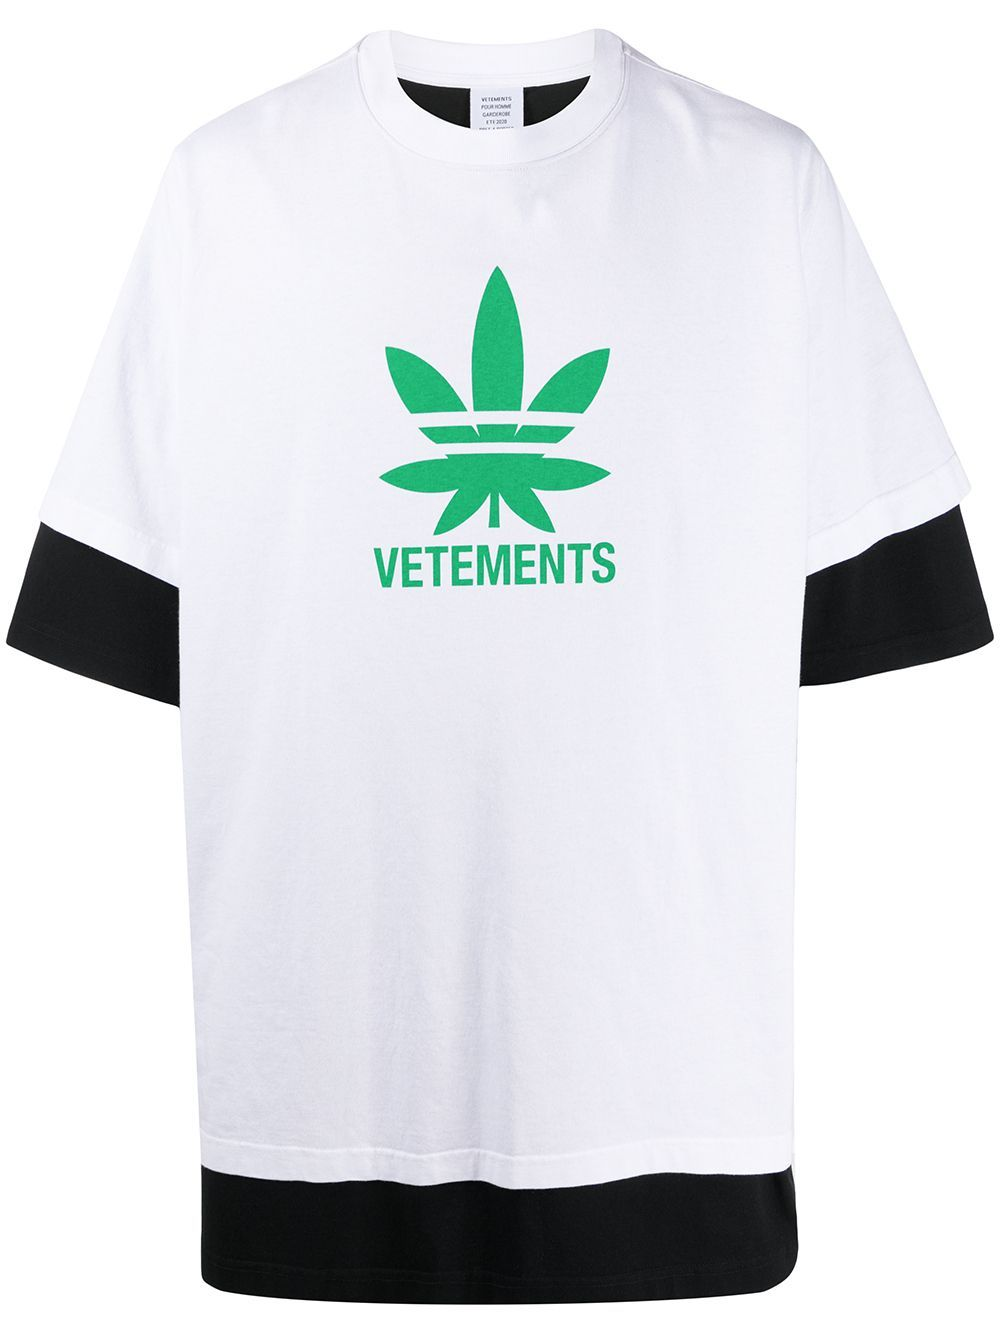 VETEMENTS double cuff maria t-shirt white